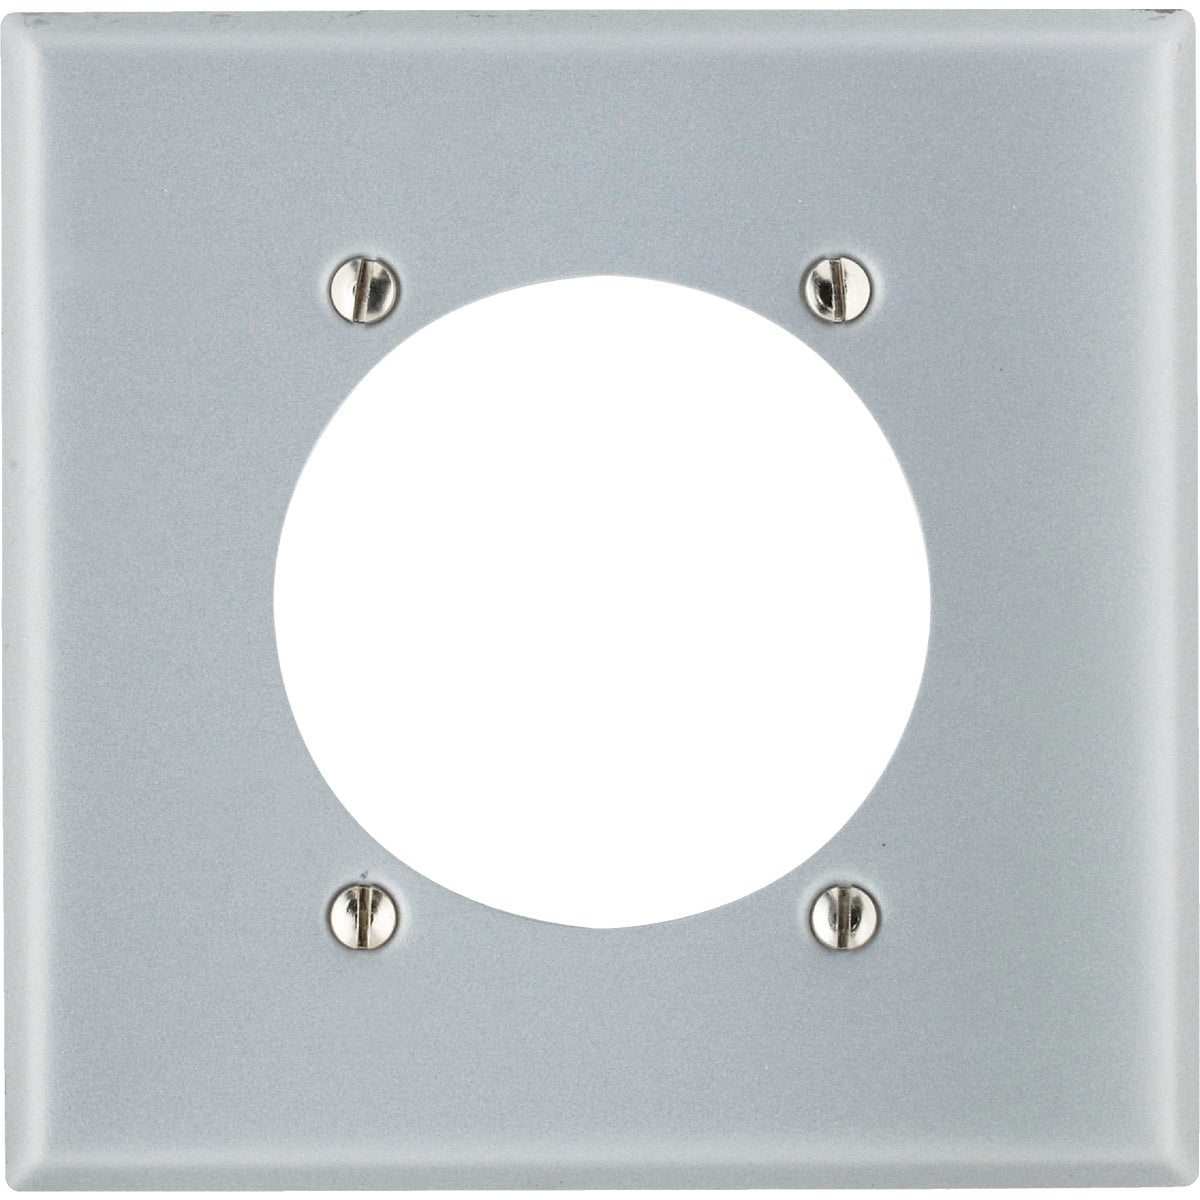 ALUM RANG/DRY WALL PLATE - 4934 by Leviton Mfg Co